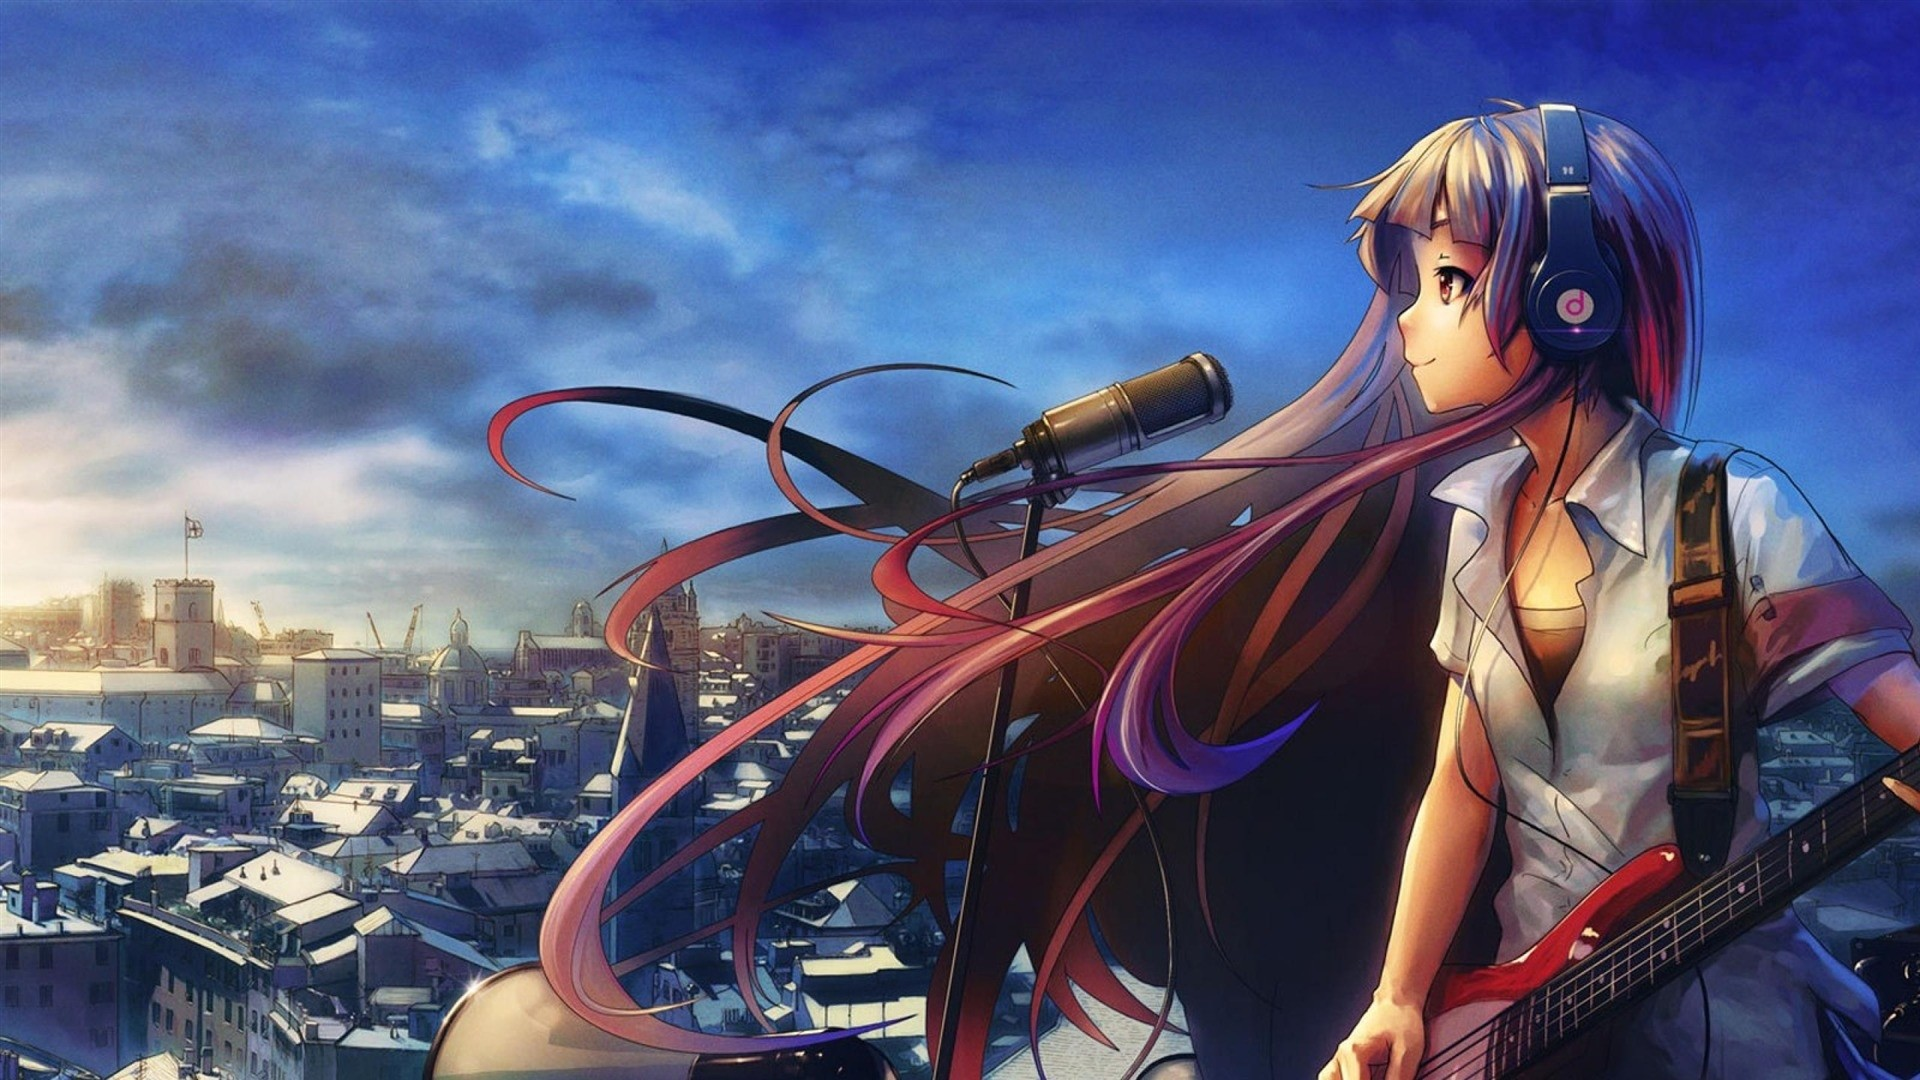 1920x1080 Anime-wallpaper-Mind-Blowing-10-Pictures-beautiful-anime-